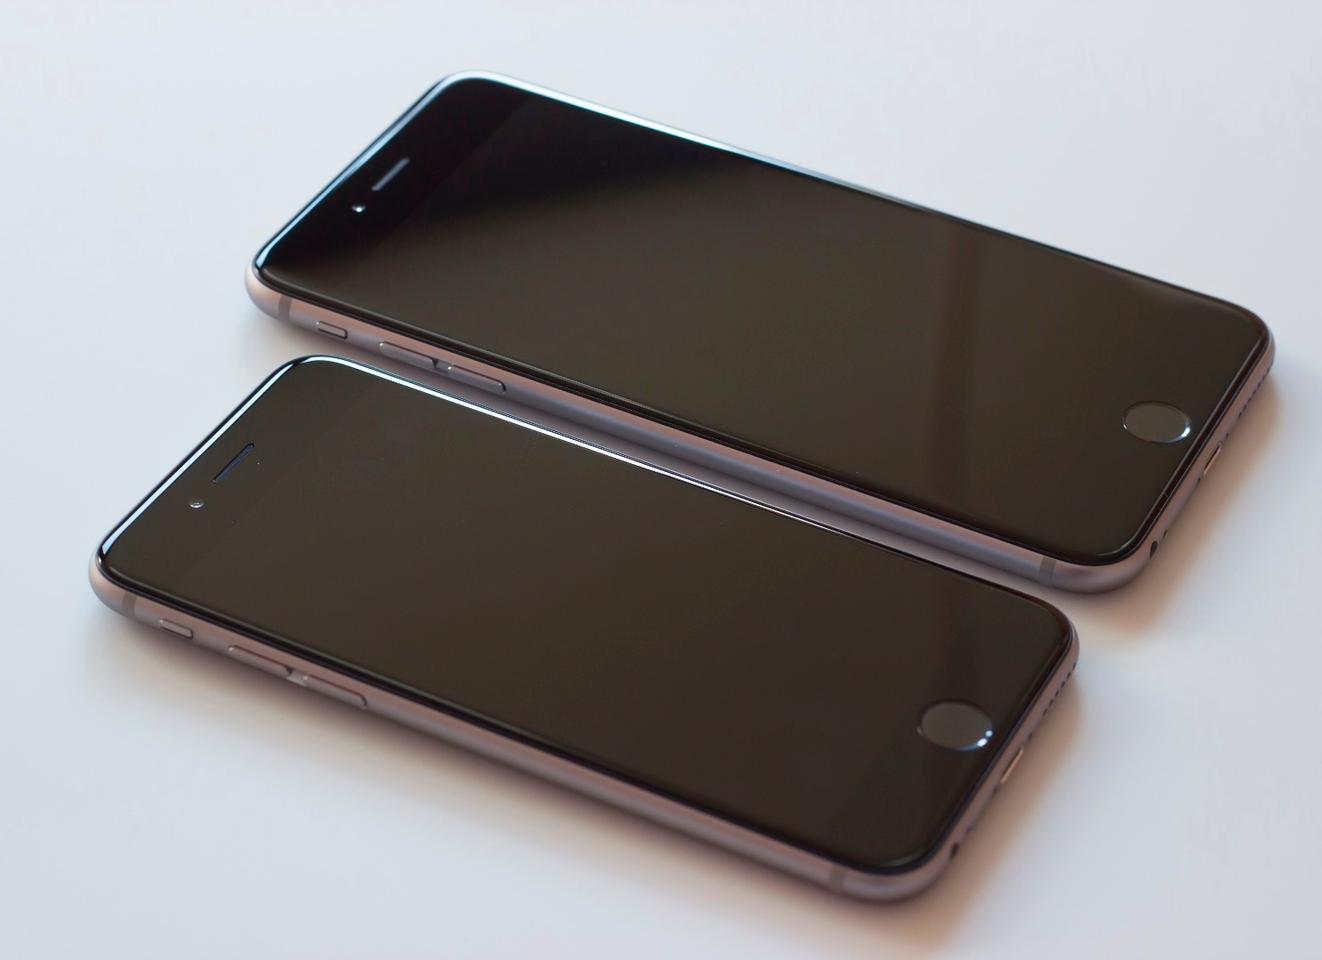 The iPhone 6s and 6s Plus are both noticeably thicker and heavier than their 2014 counterparts